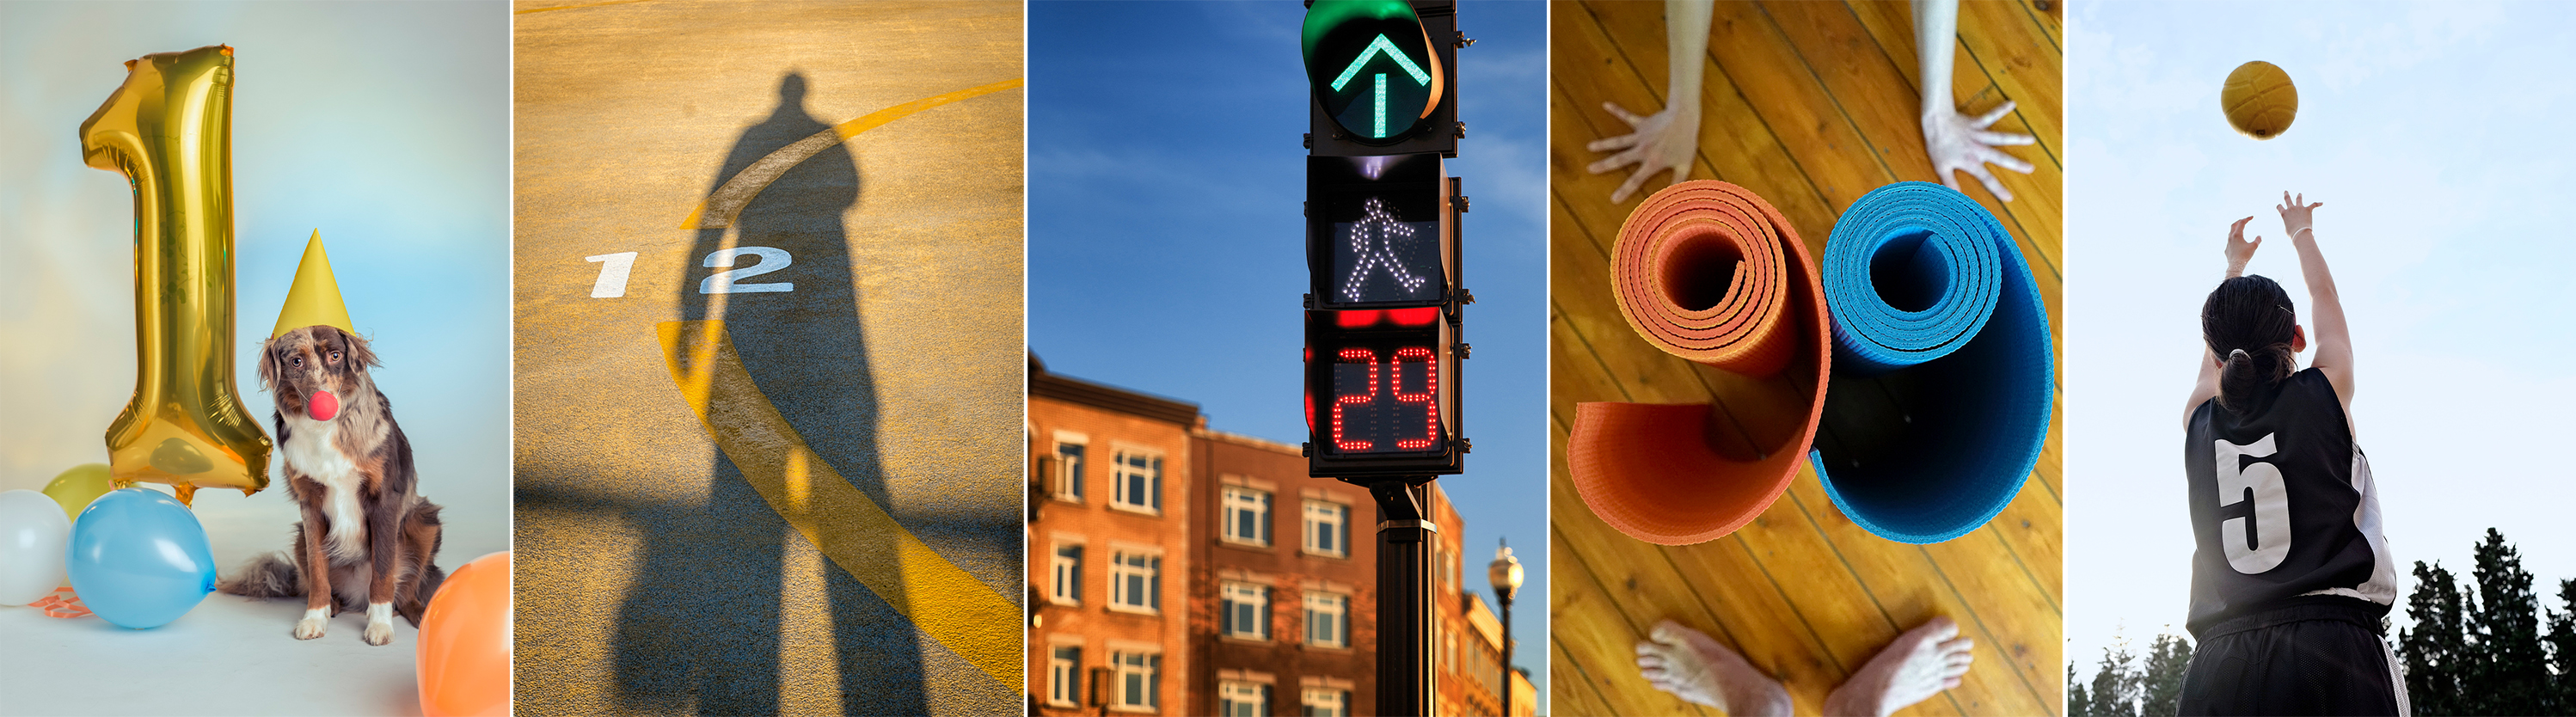 Numbers, Numbers Everywhere! Meet the Winners of Our Latest Photo Quest